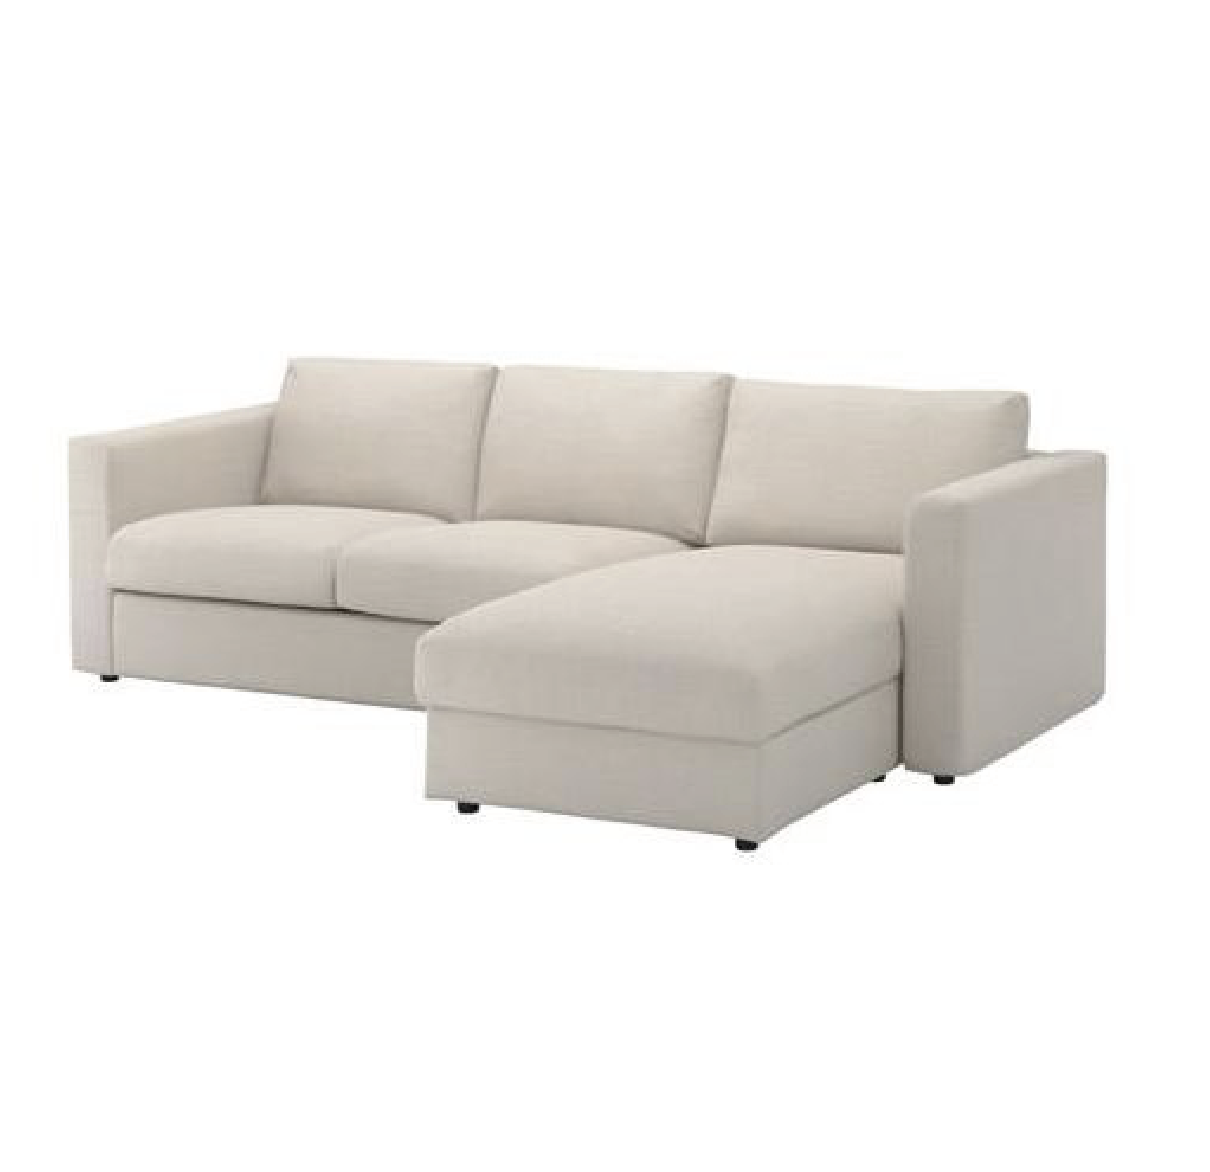 Vimle Sofa With Chaise With Headrest Gunnared Beige Sofa Bed